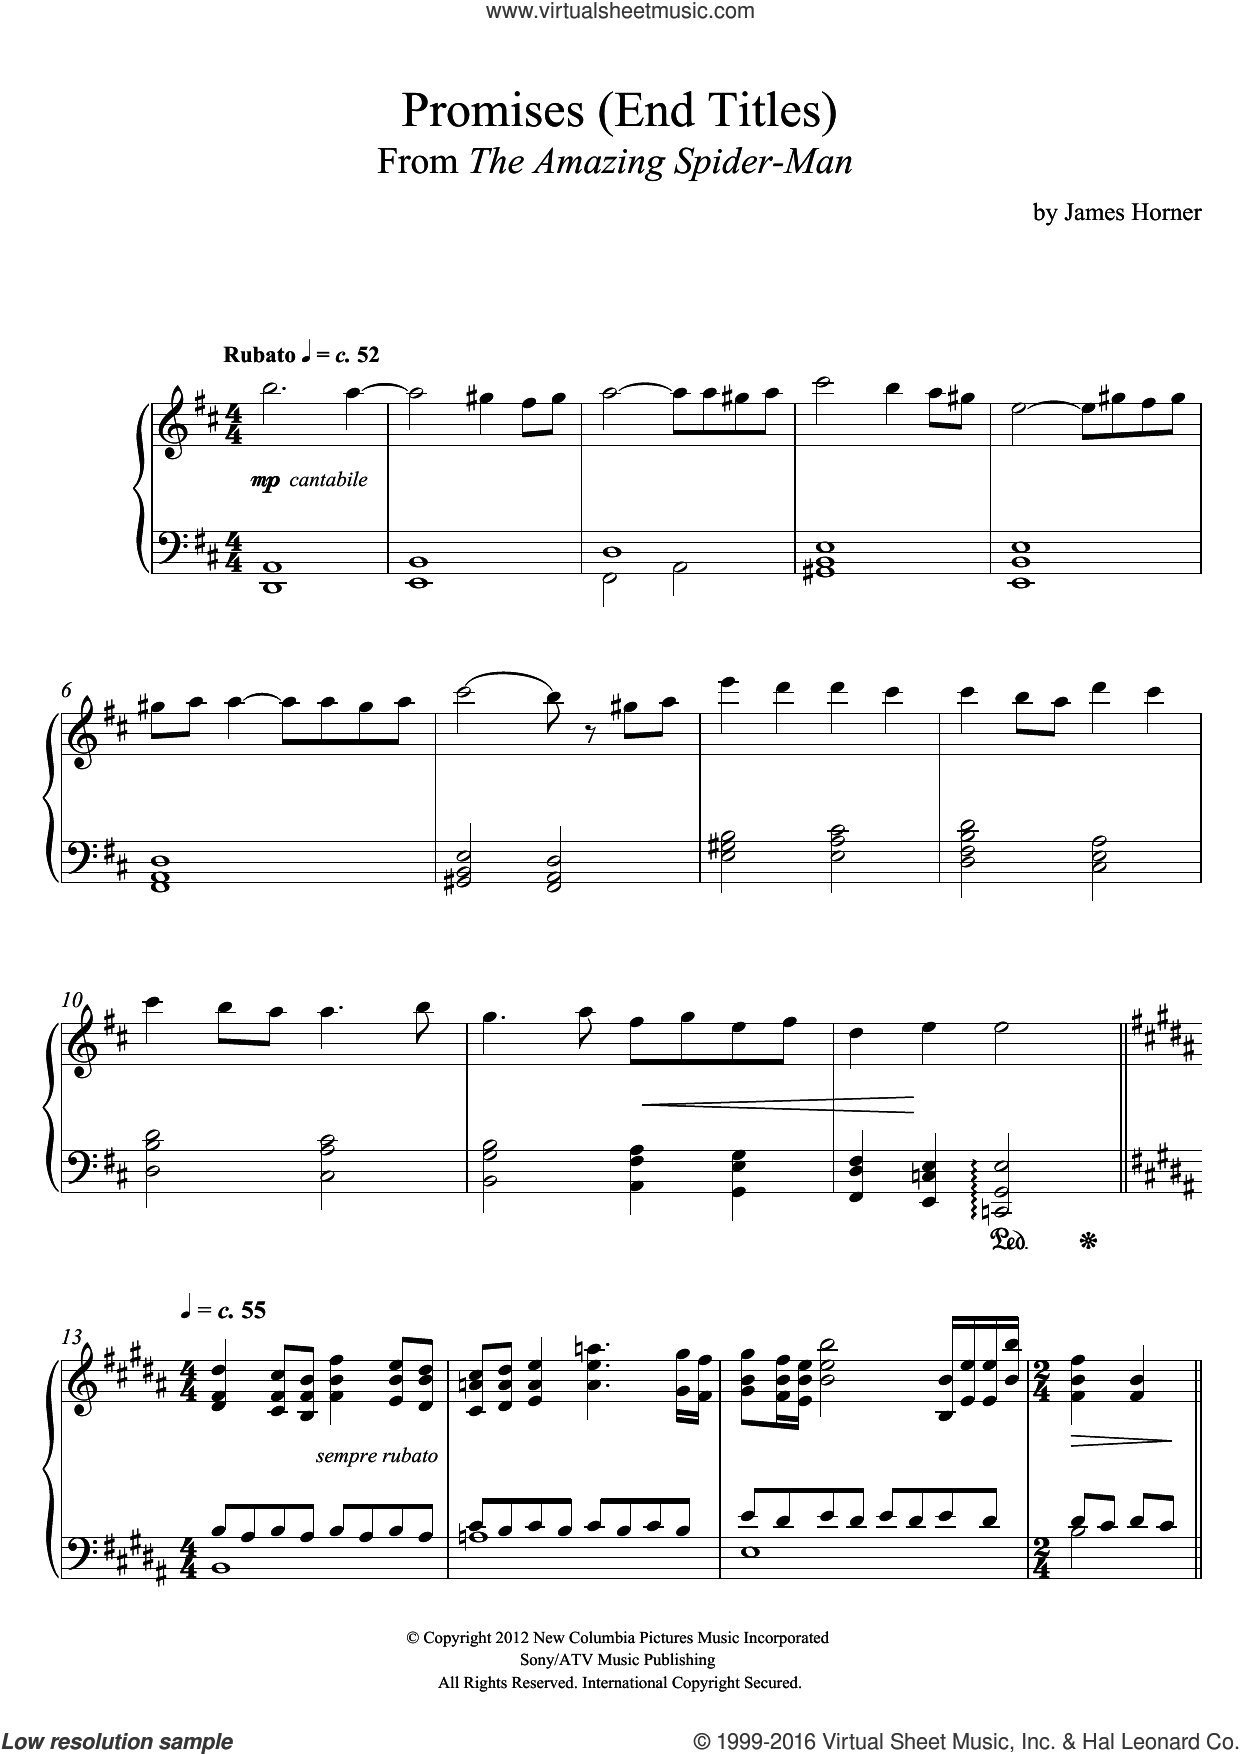 Promises (From 'The Amazing Spider-Man' End Titles) sheet music for piano solo by James Horner, intermediate skill level